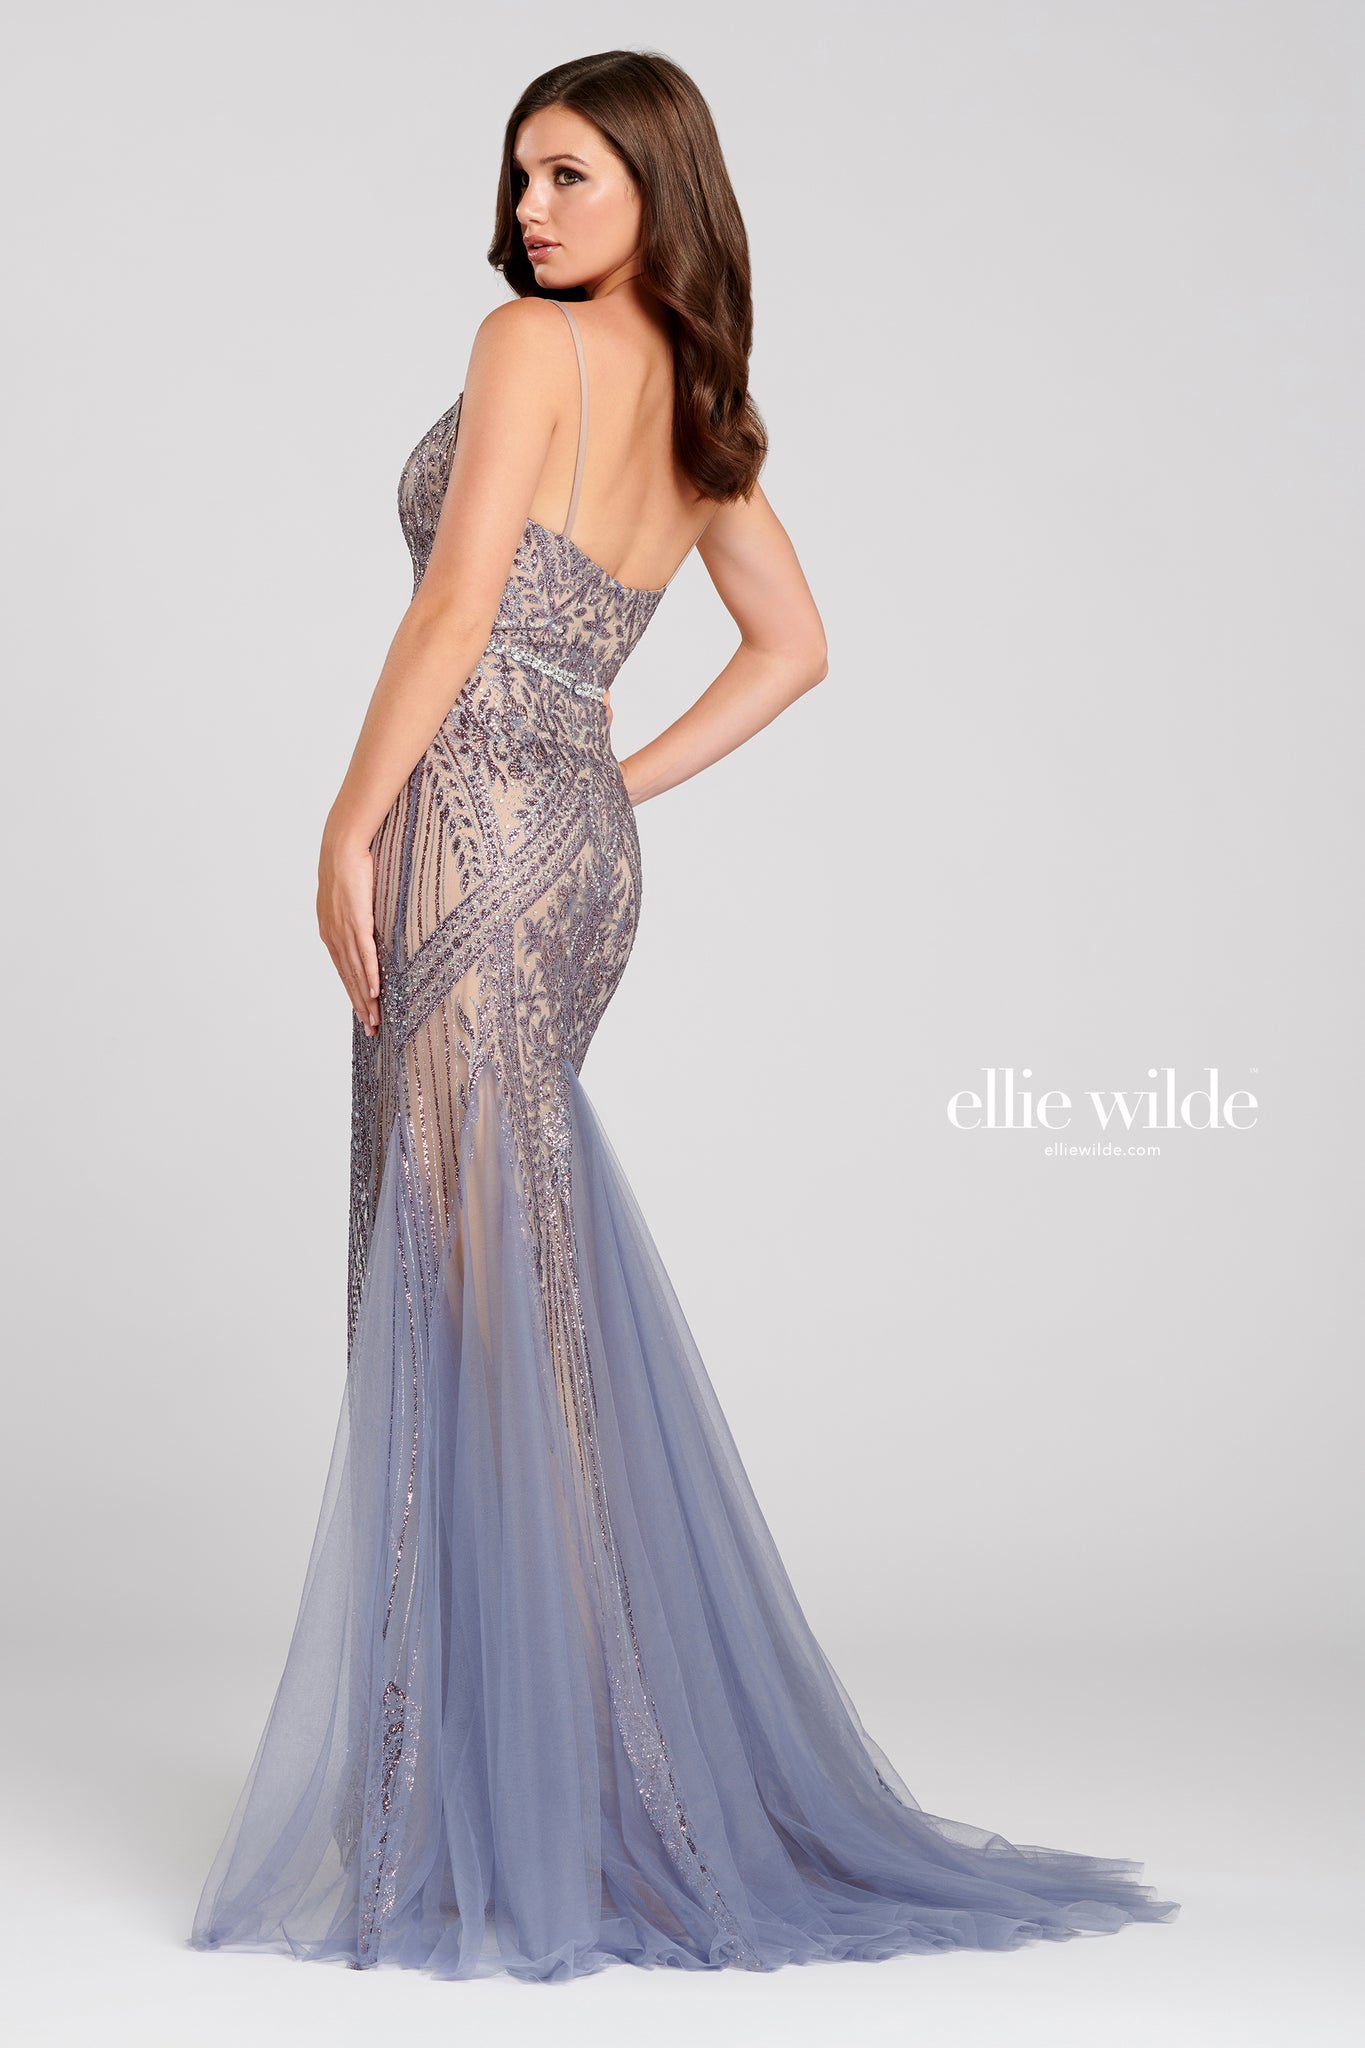 Ellie Wilde Slate Chiffon Gown - Gissings Boutique